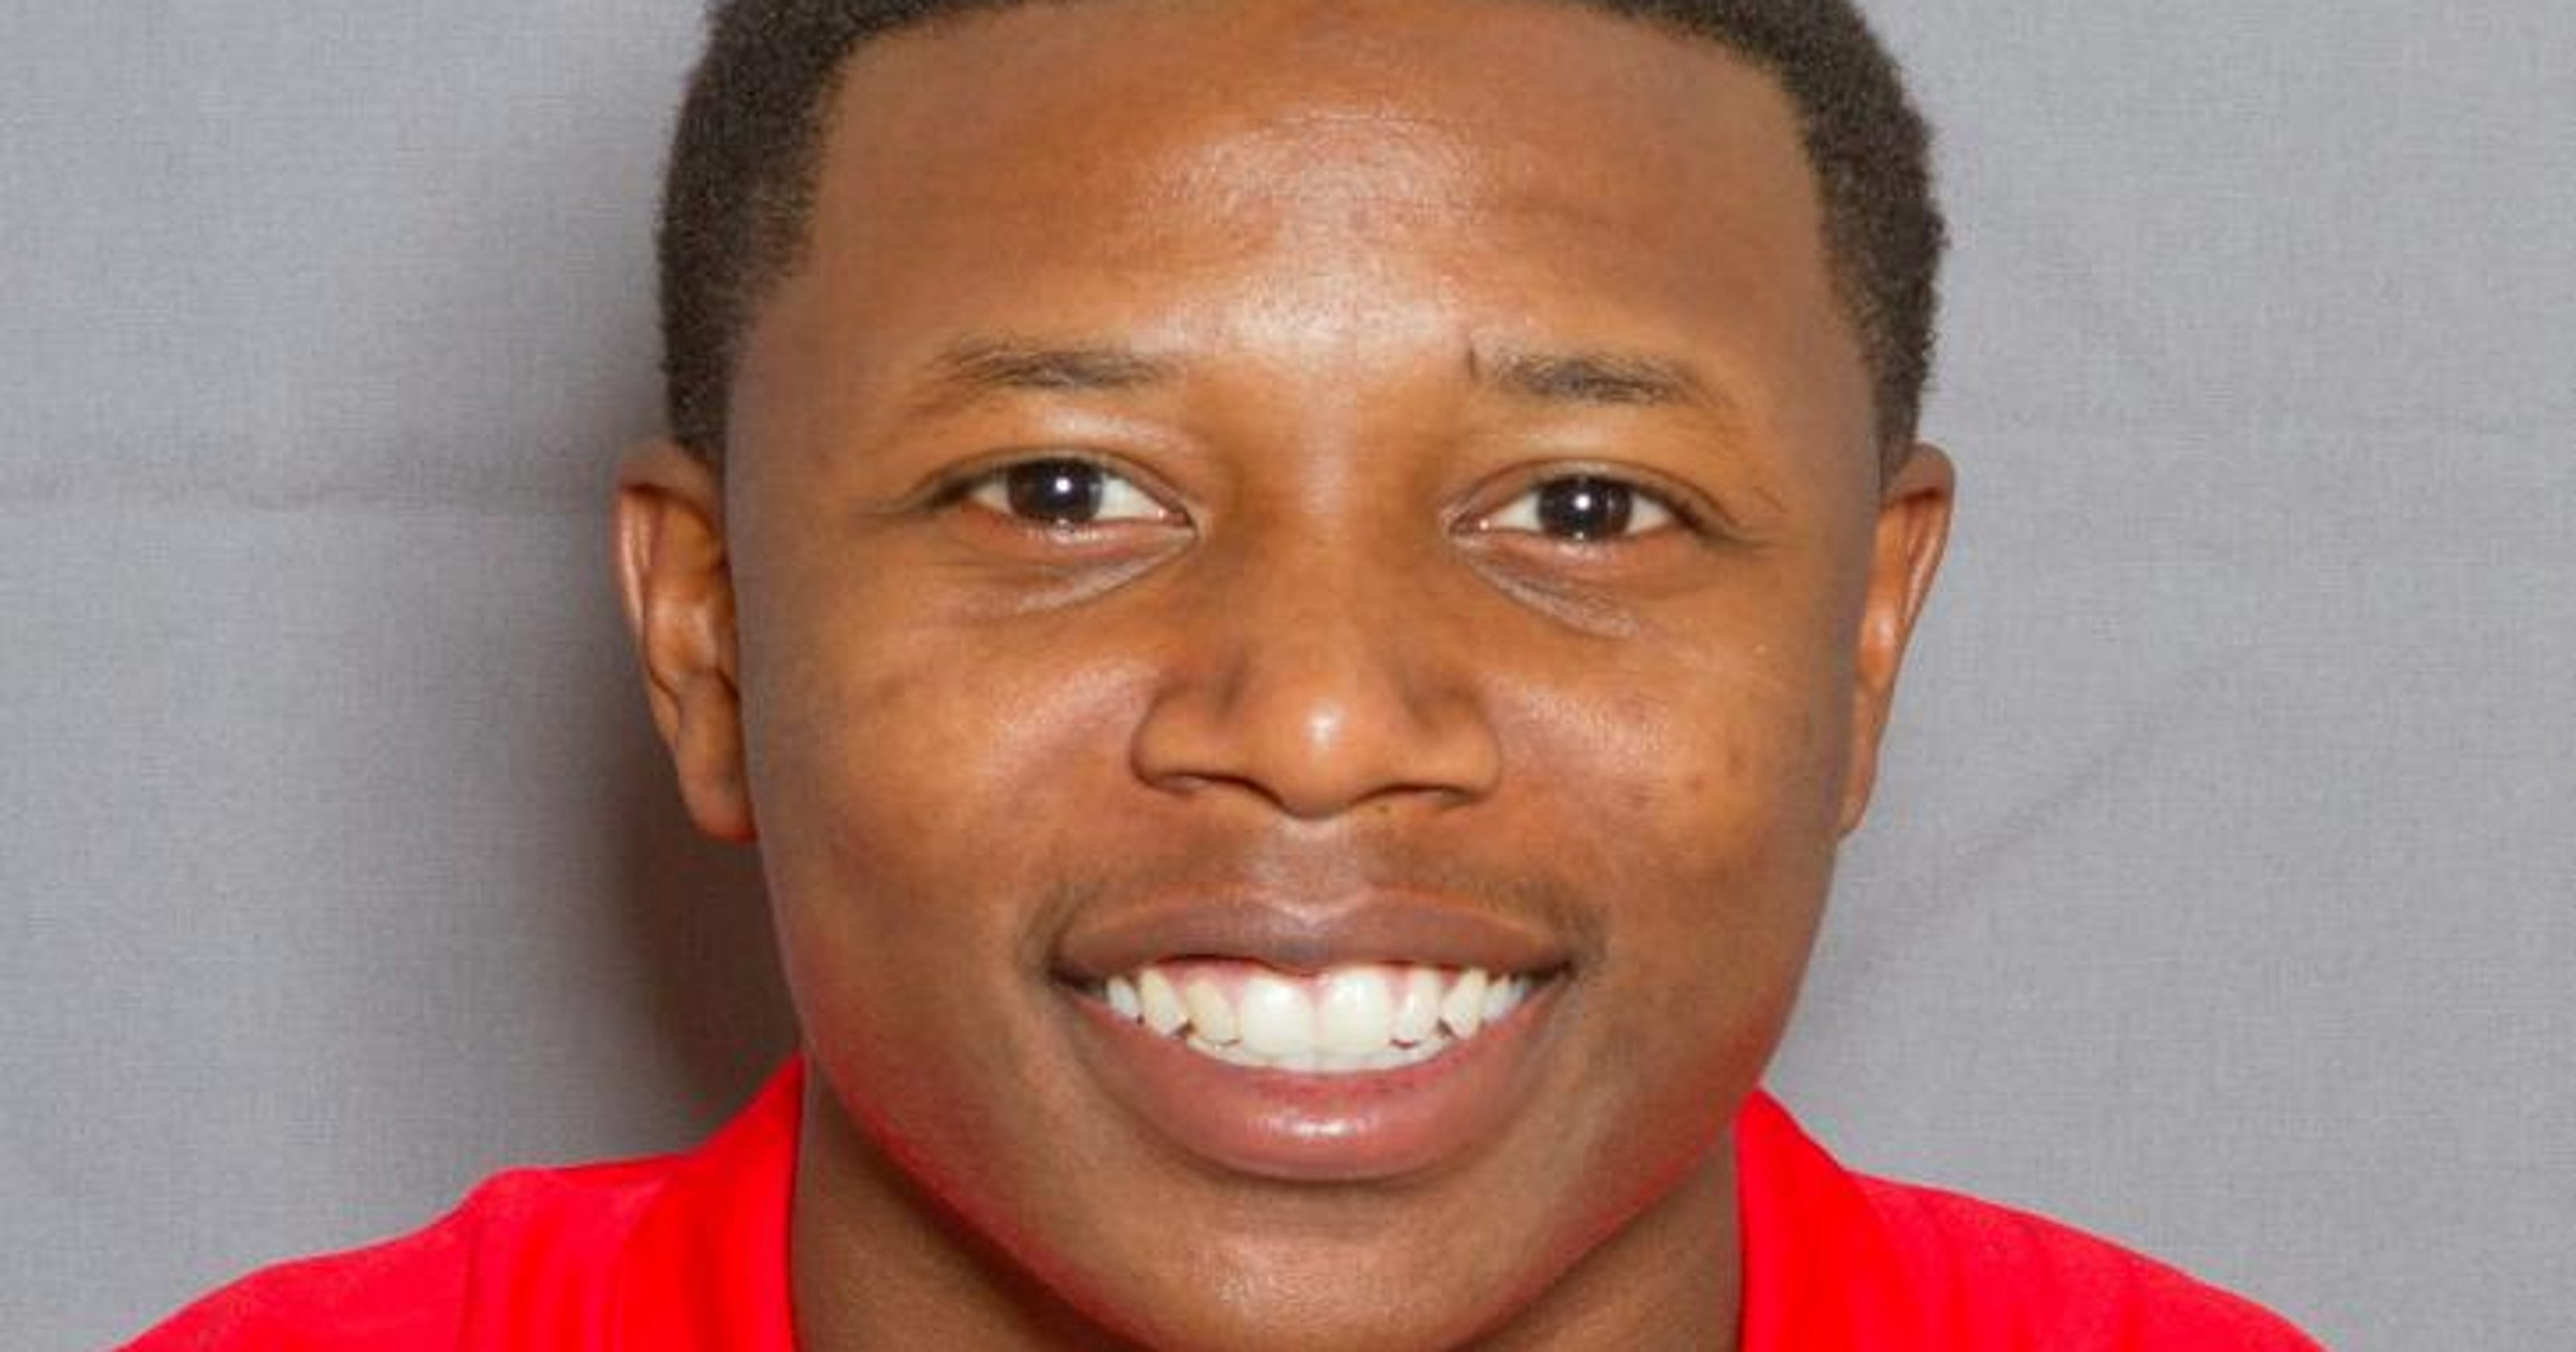 New Mexico's SaQwan Edwards arrested in rape case